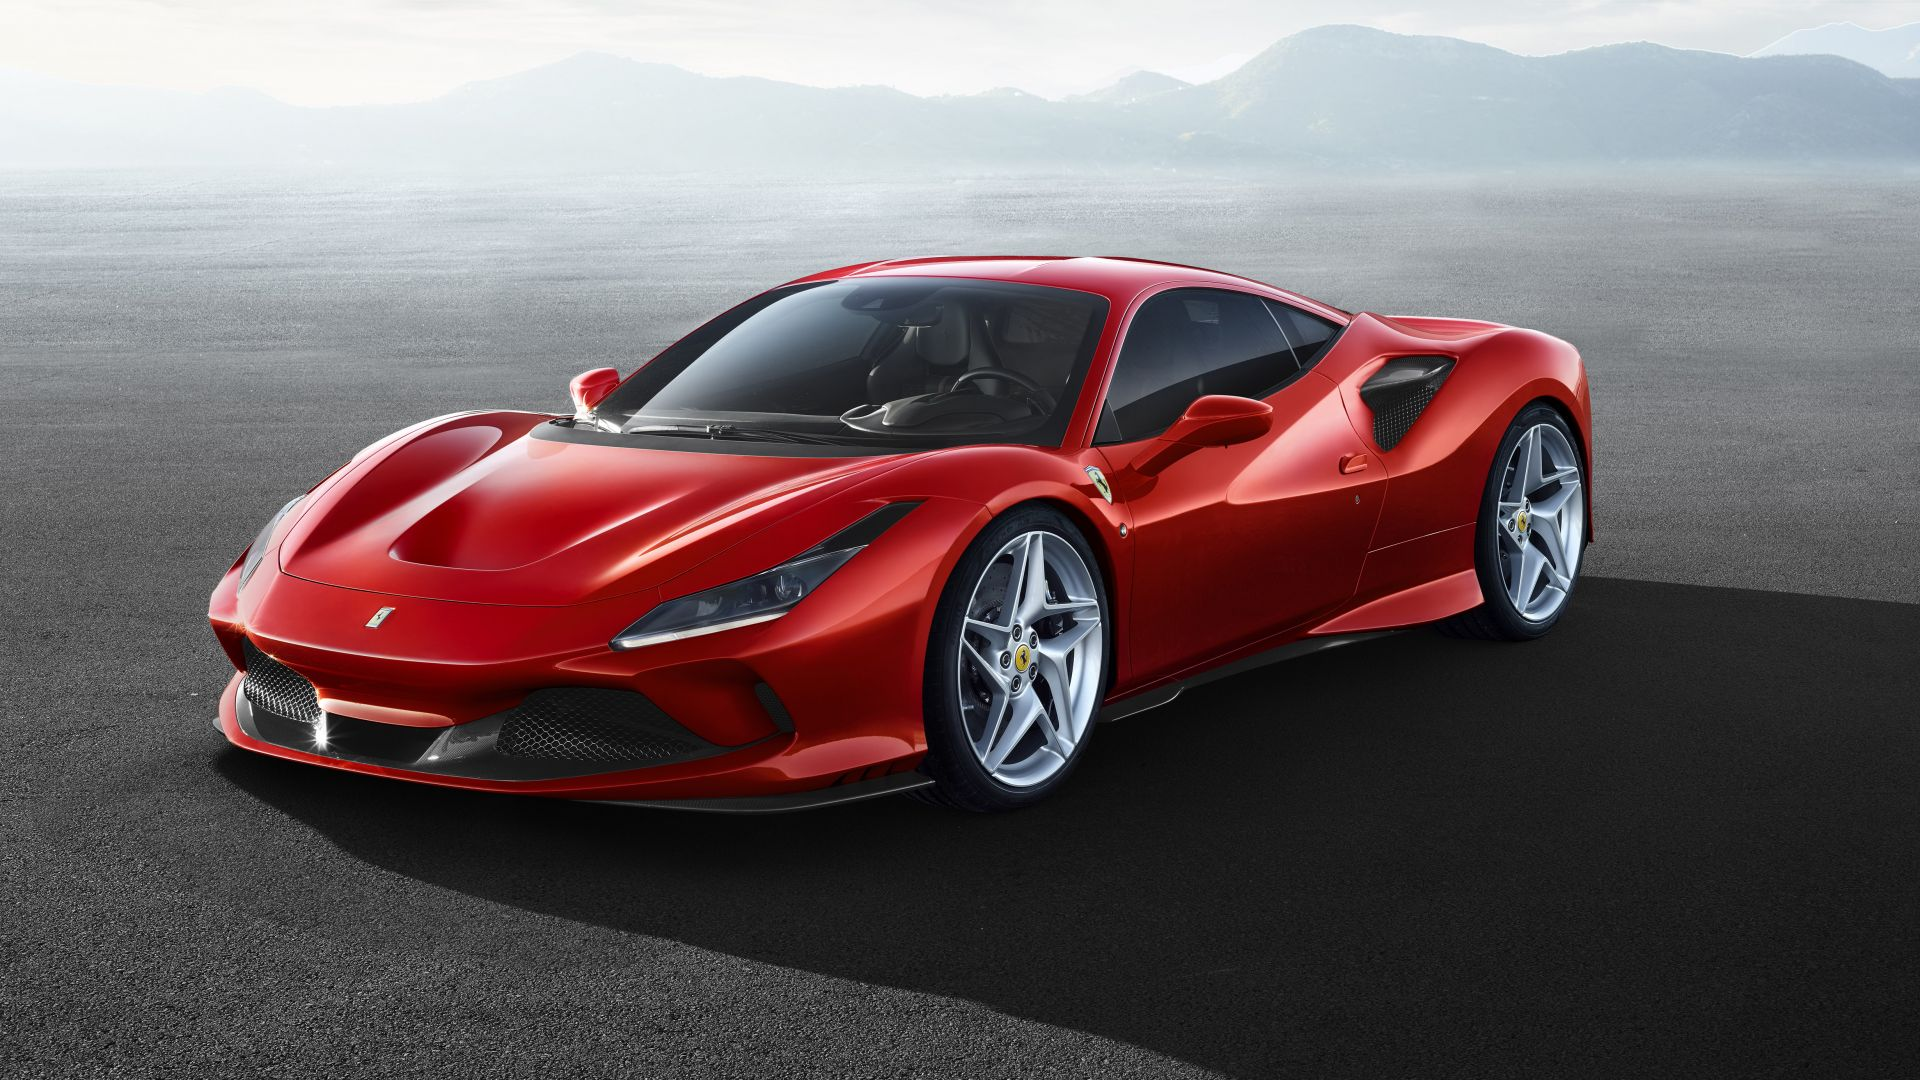 Ferrari F8 Tributo Red Color Car Wallpaper HD 1920x1080